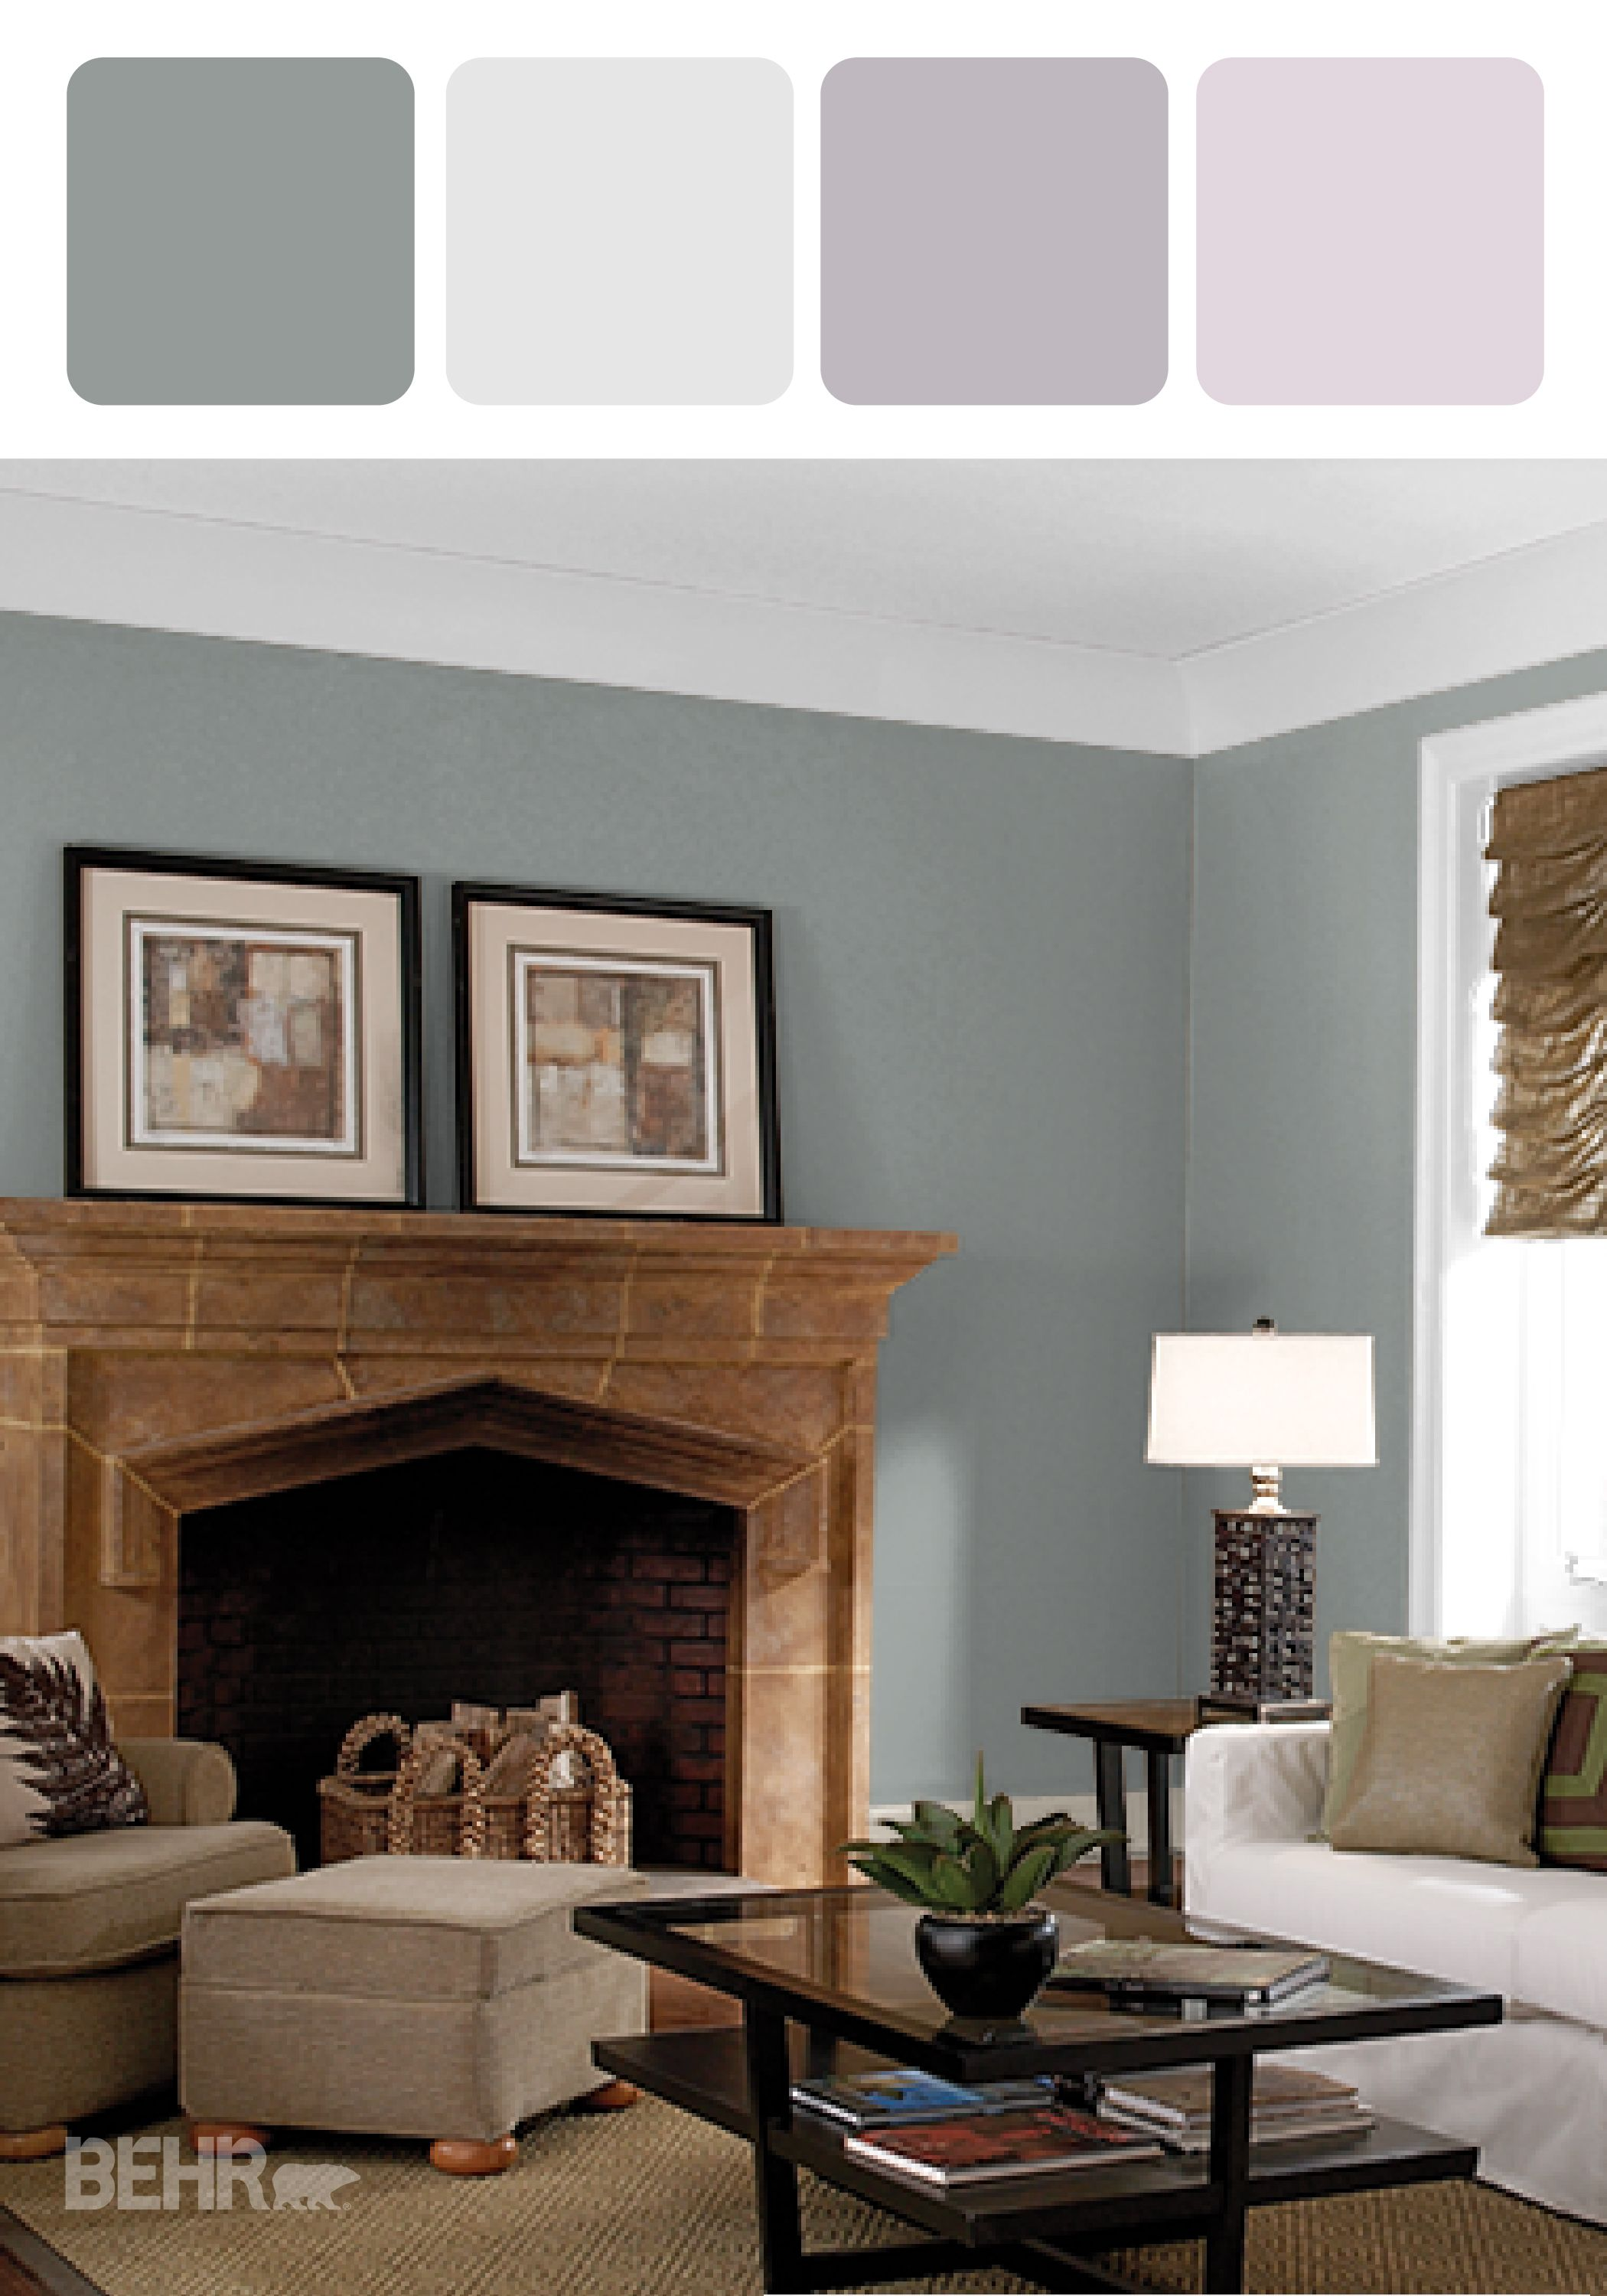 Add A Sense Of Cozy Luxury In Your Home With This Design Inspiration That Features BEHR